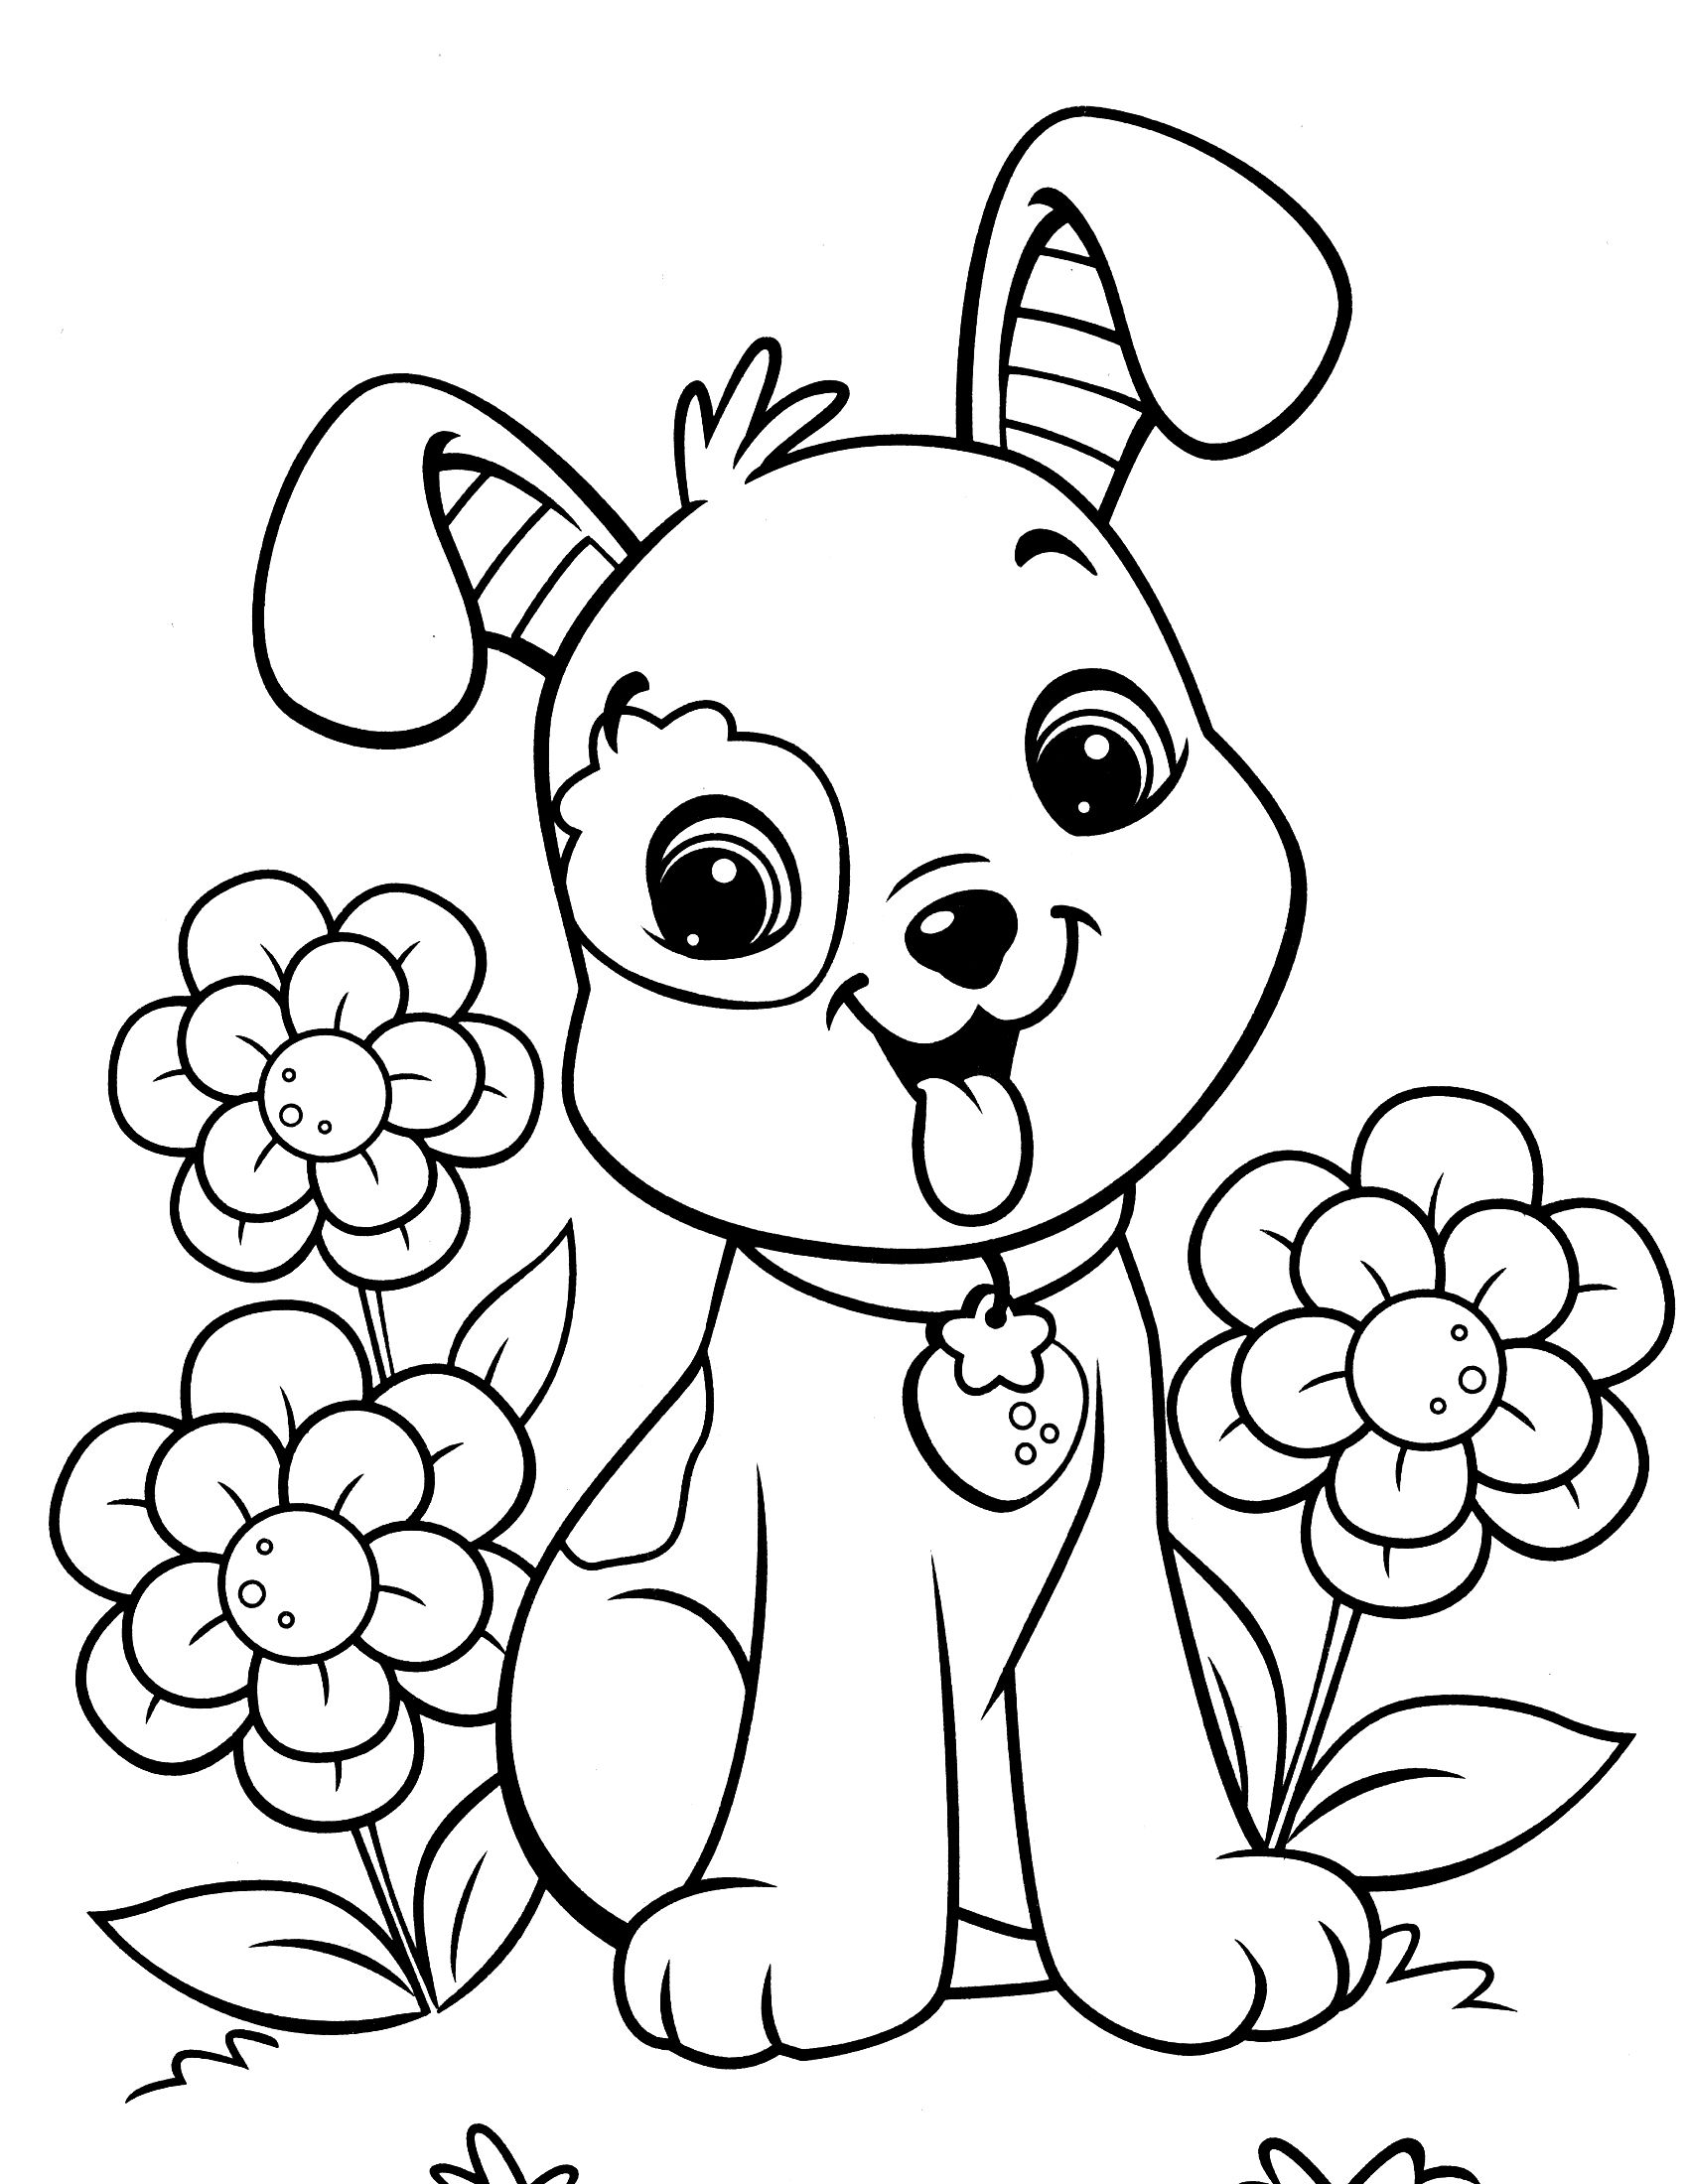 coloring in pages of dogs | You And Your Dog – Tips For A Great Relationship | design ...